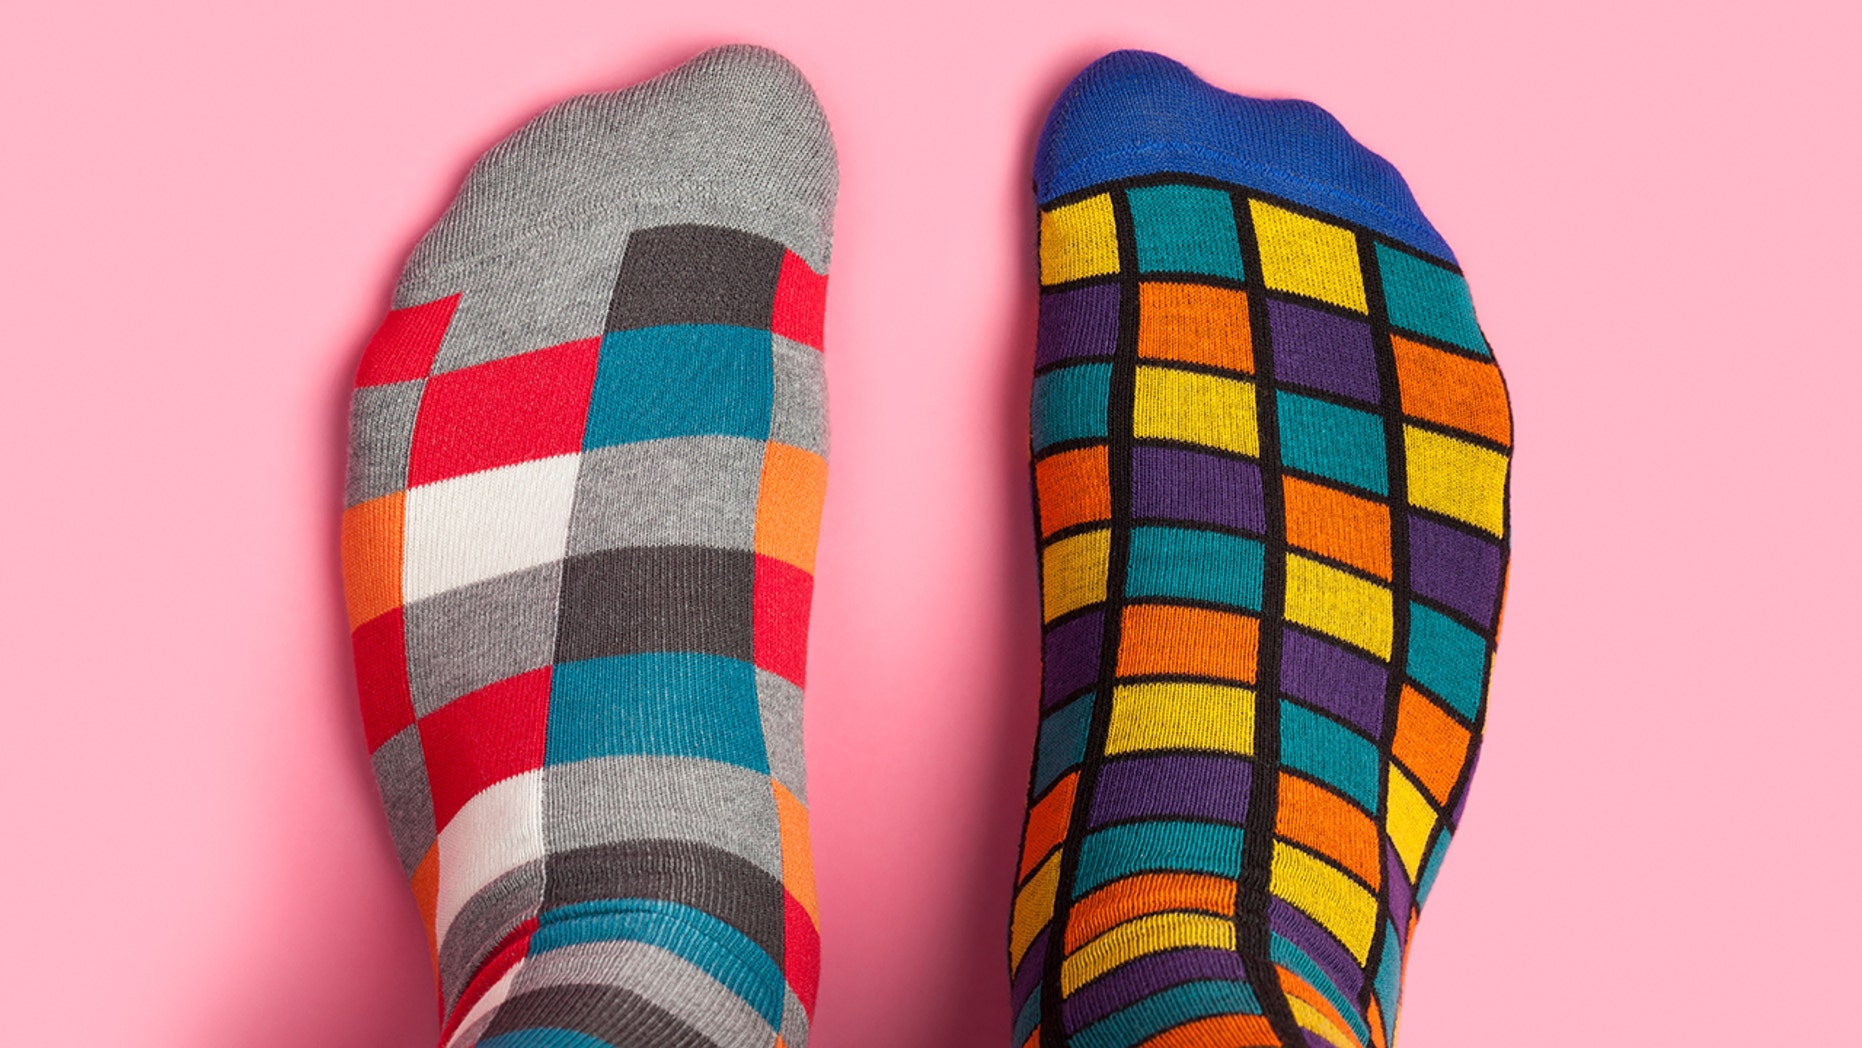 The man reportedly admitted to doctors that he sniffs his dirty socks each day.